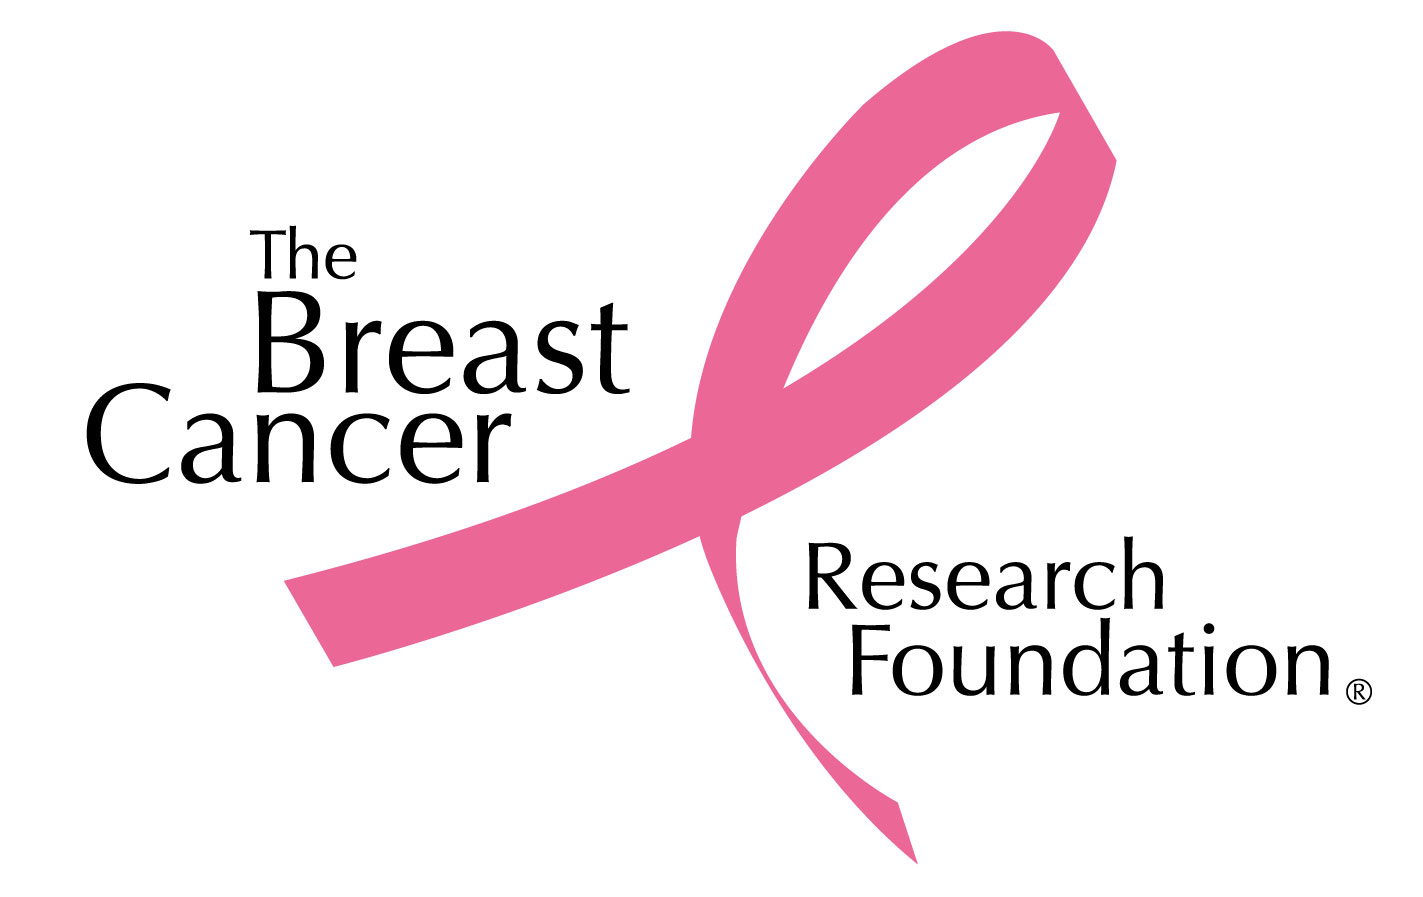 Rating for the breast cancer society